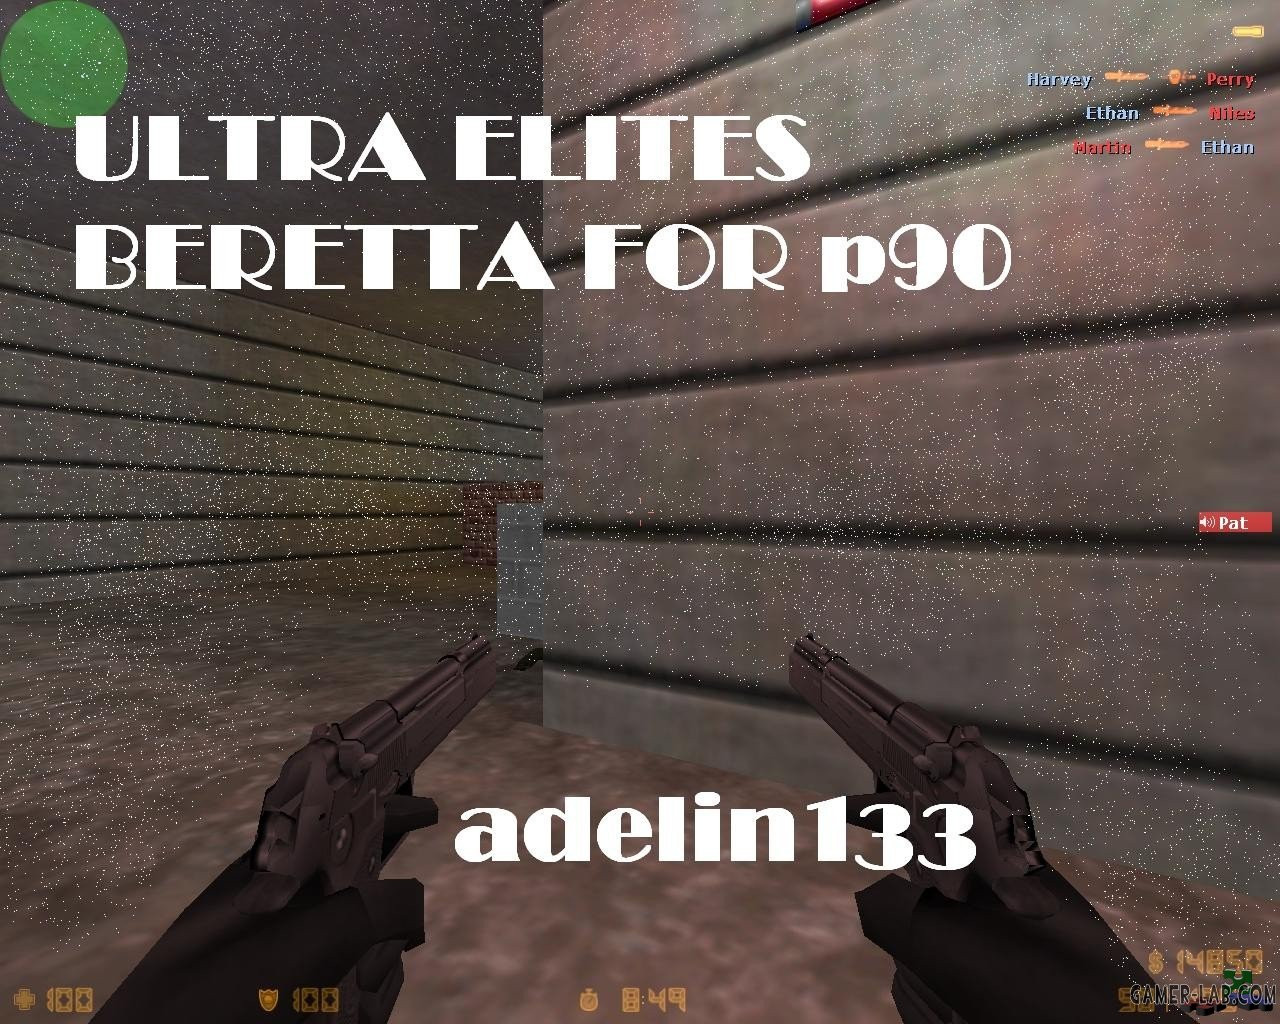 Ultra beretta pistols for p90